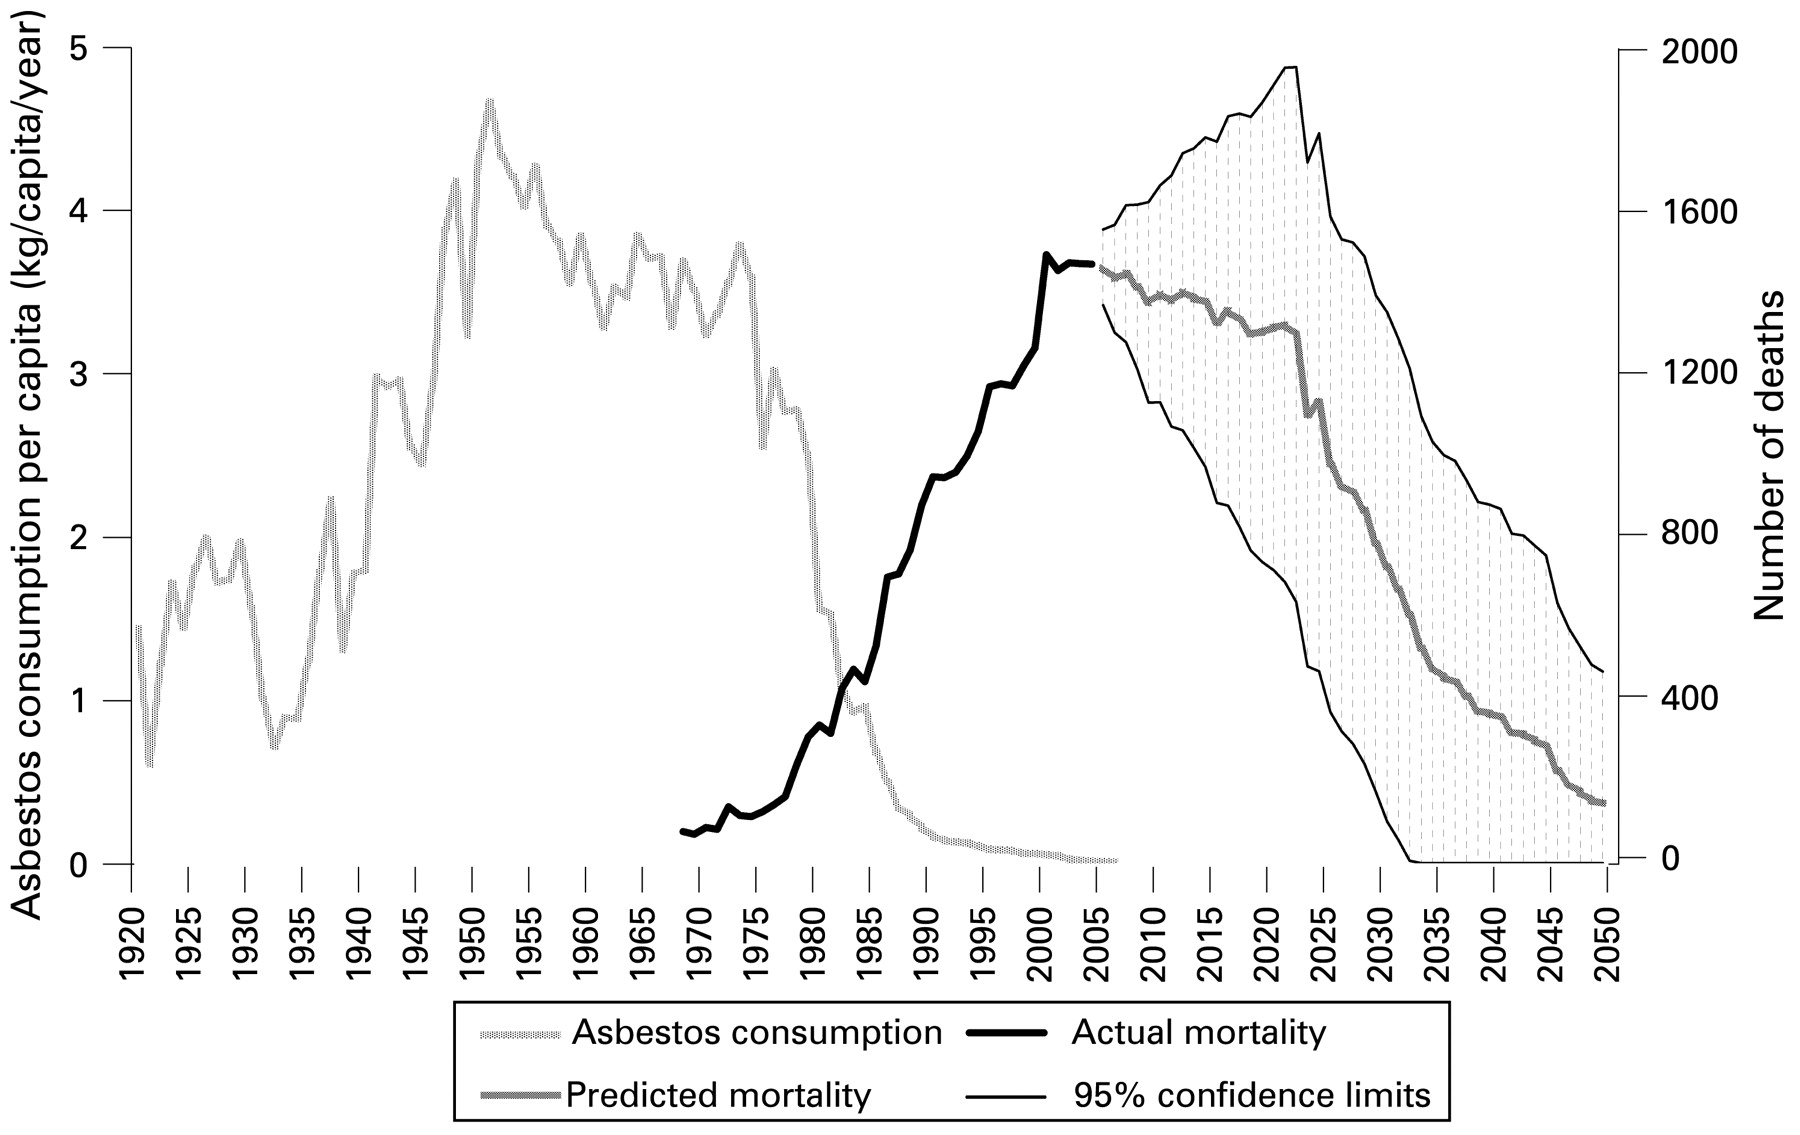 Asbestosis mortality in the USA: facts and predictions